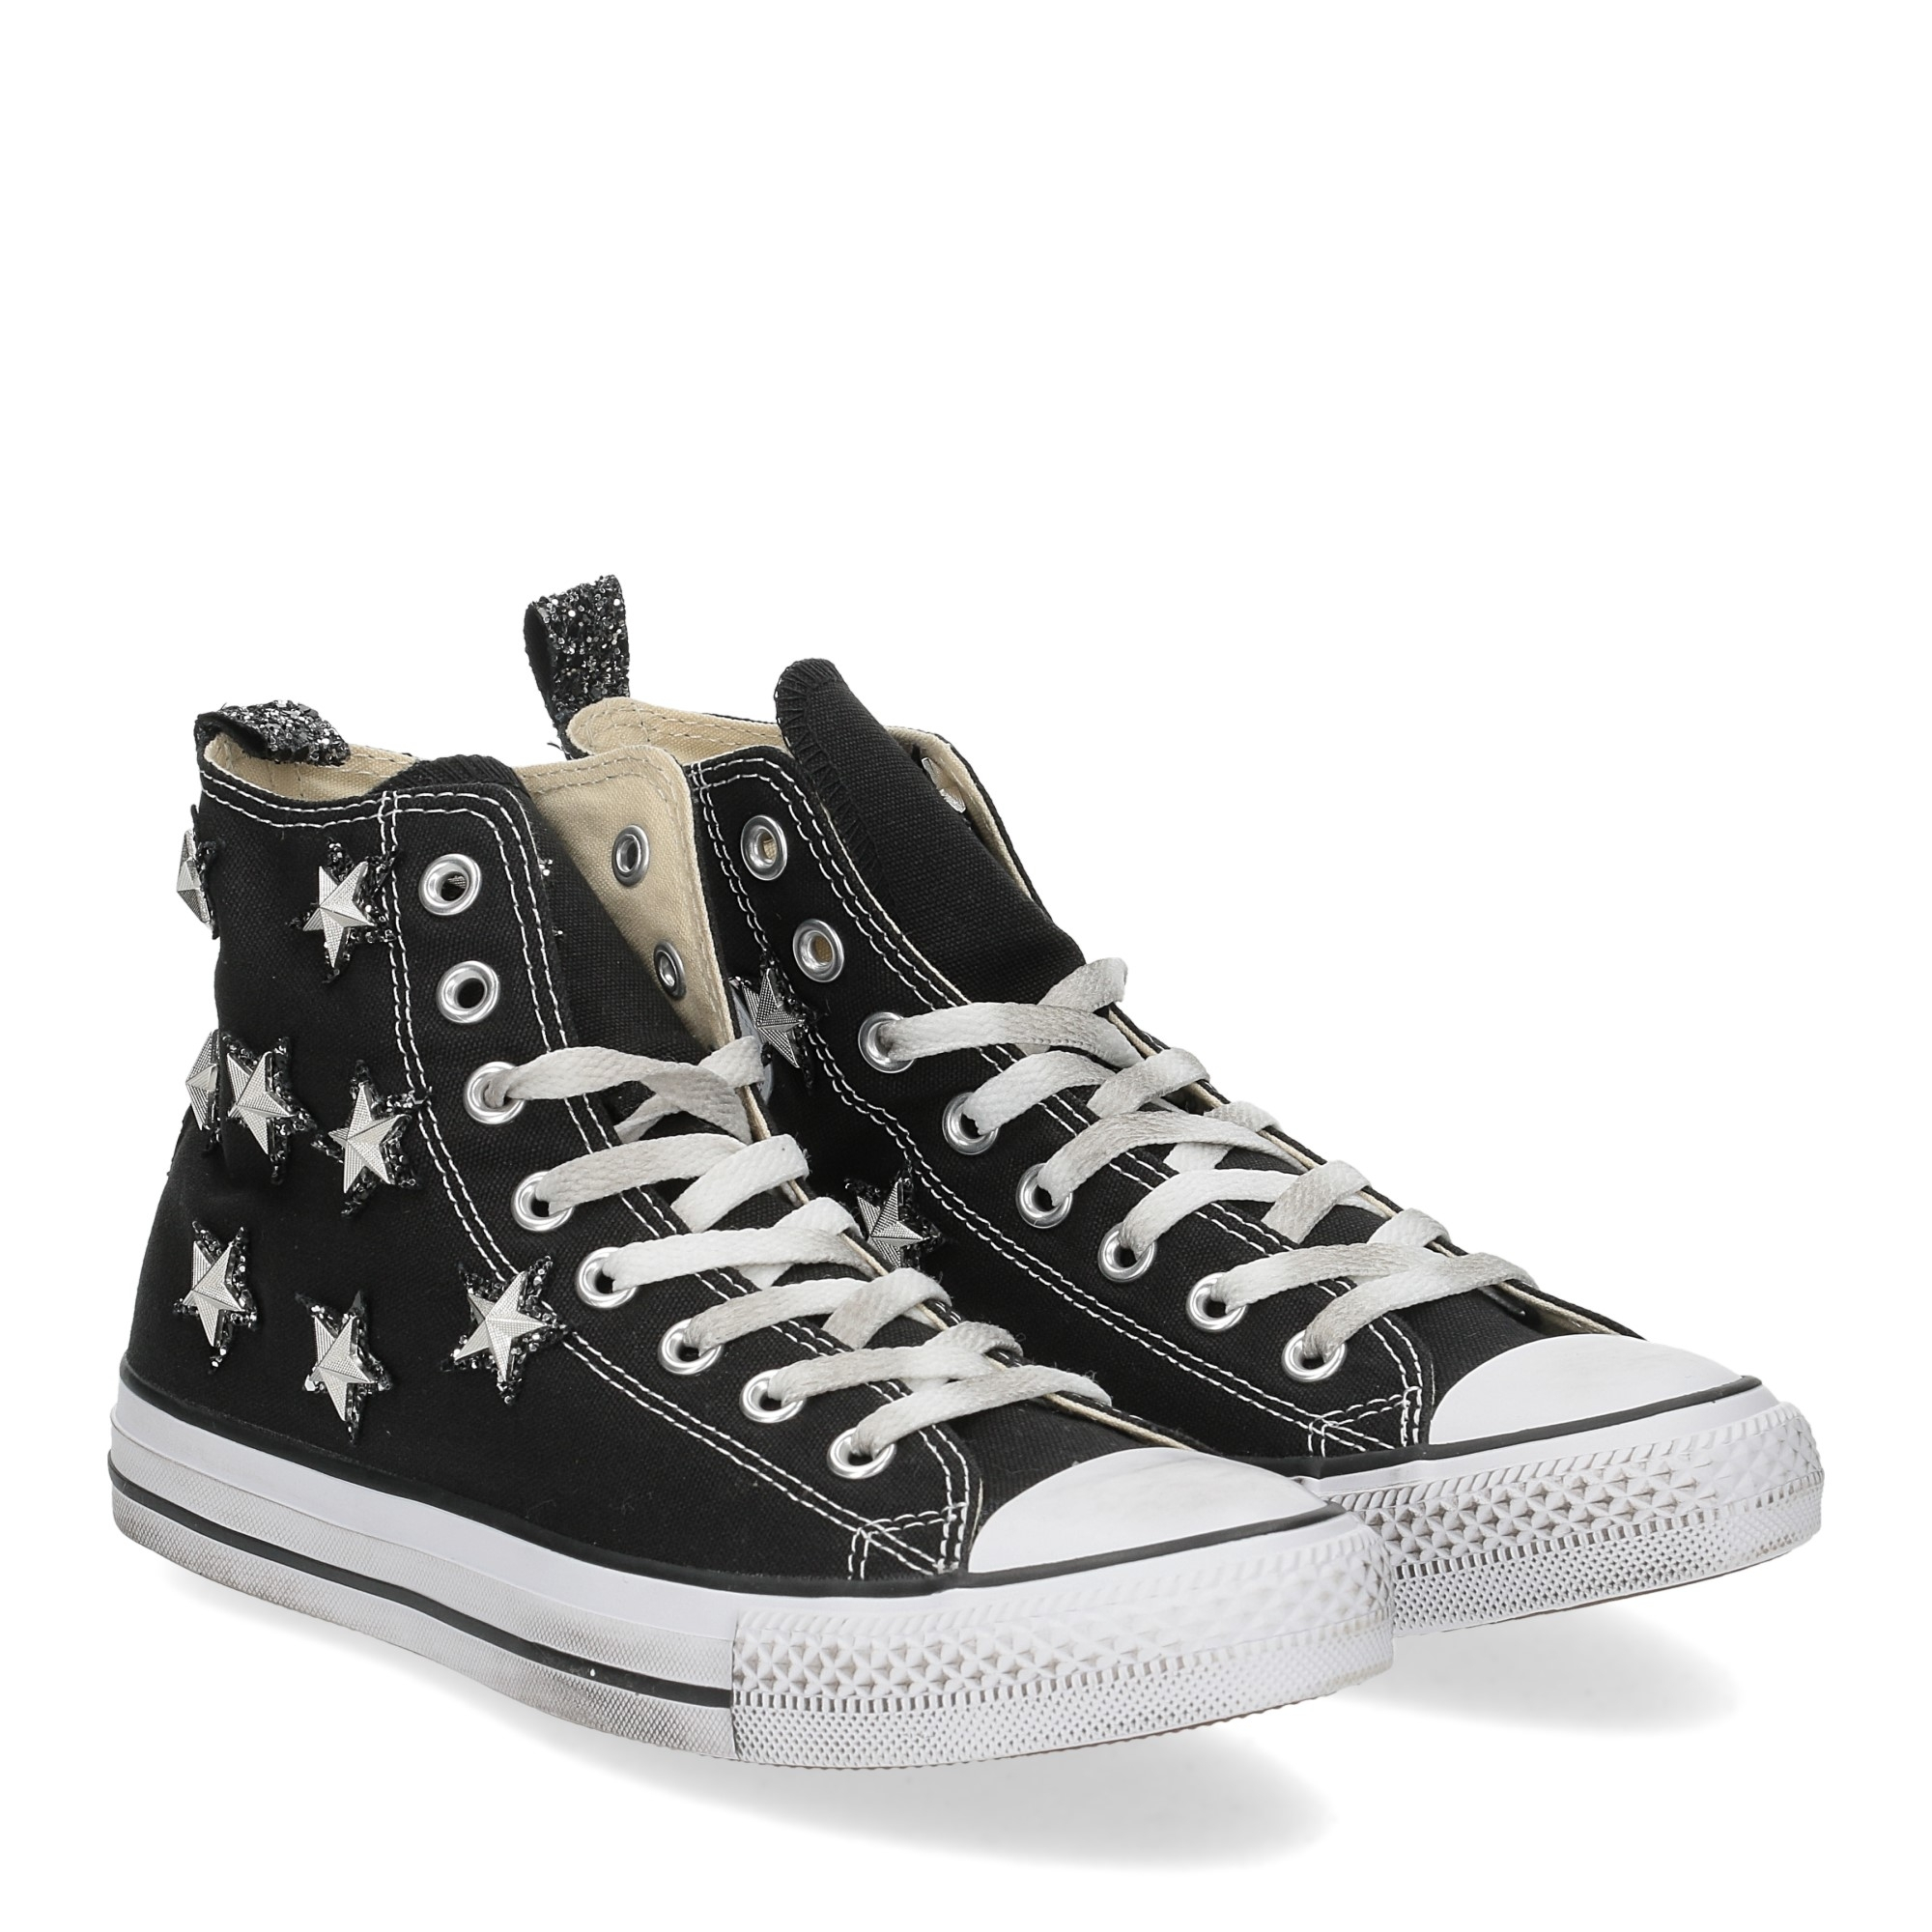 Converse All Star Hi Canvas Limited Edition Black silver Star